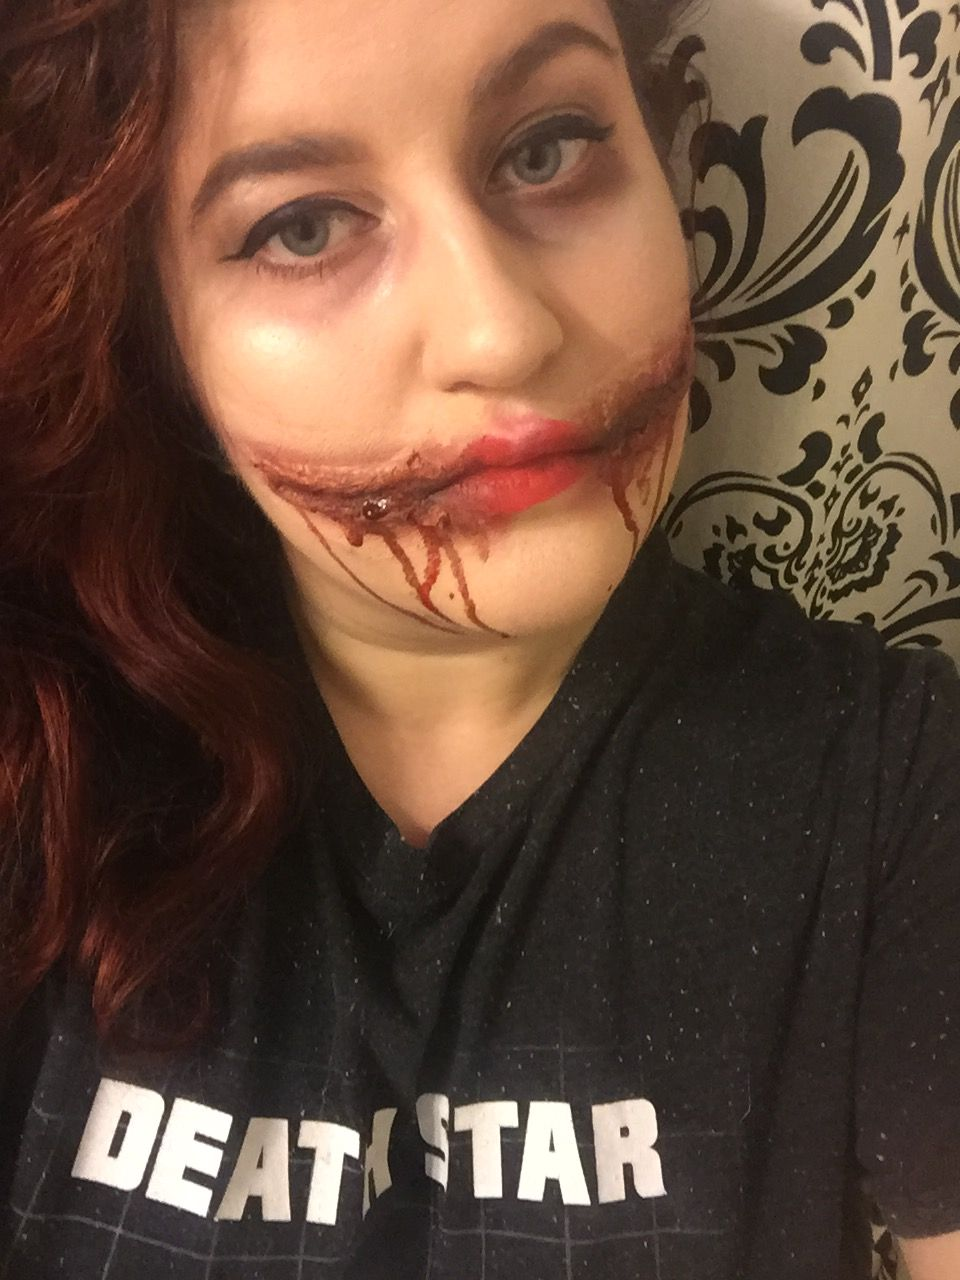 Chelsea grin or a Glasgow smile Halloween makeup